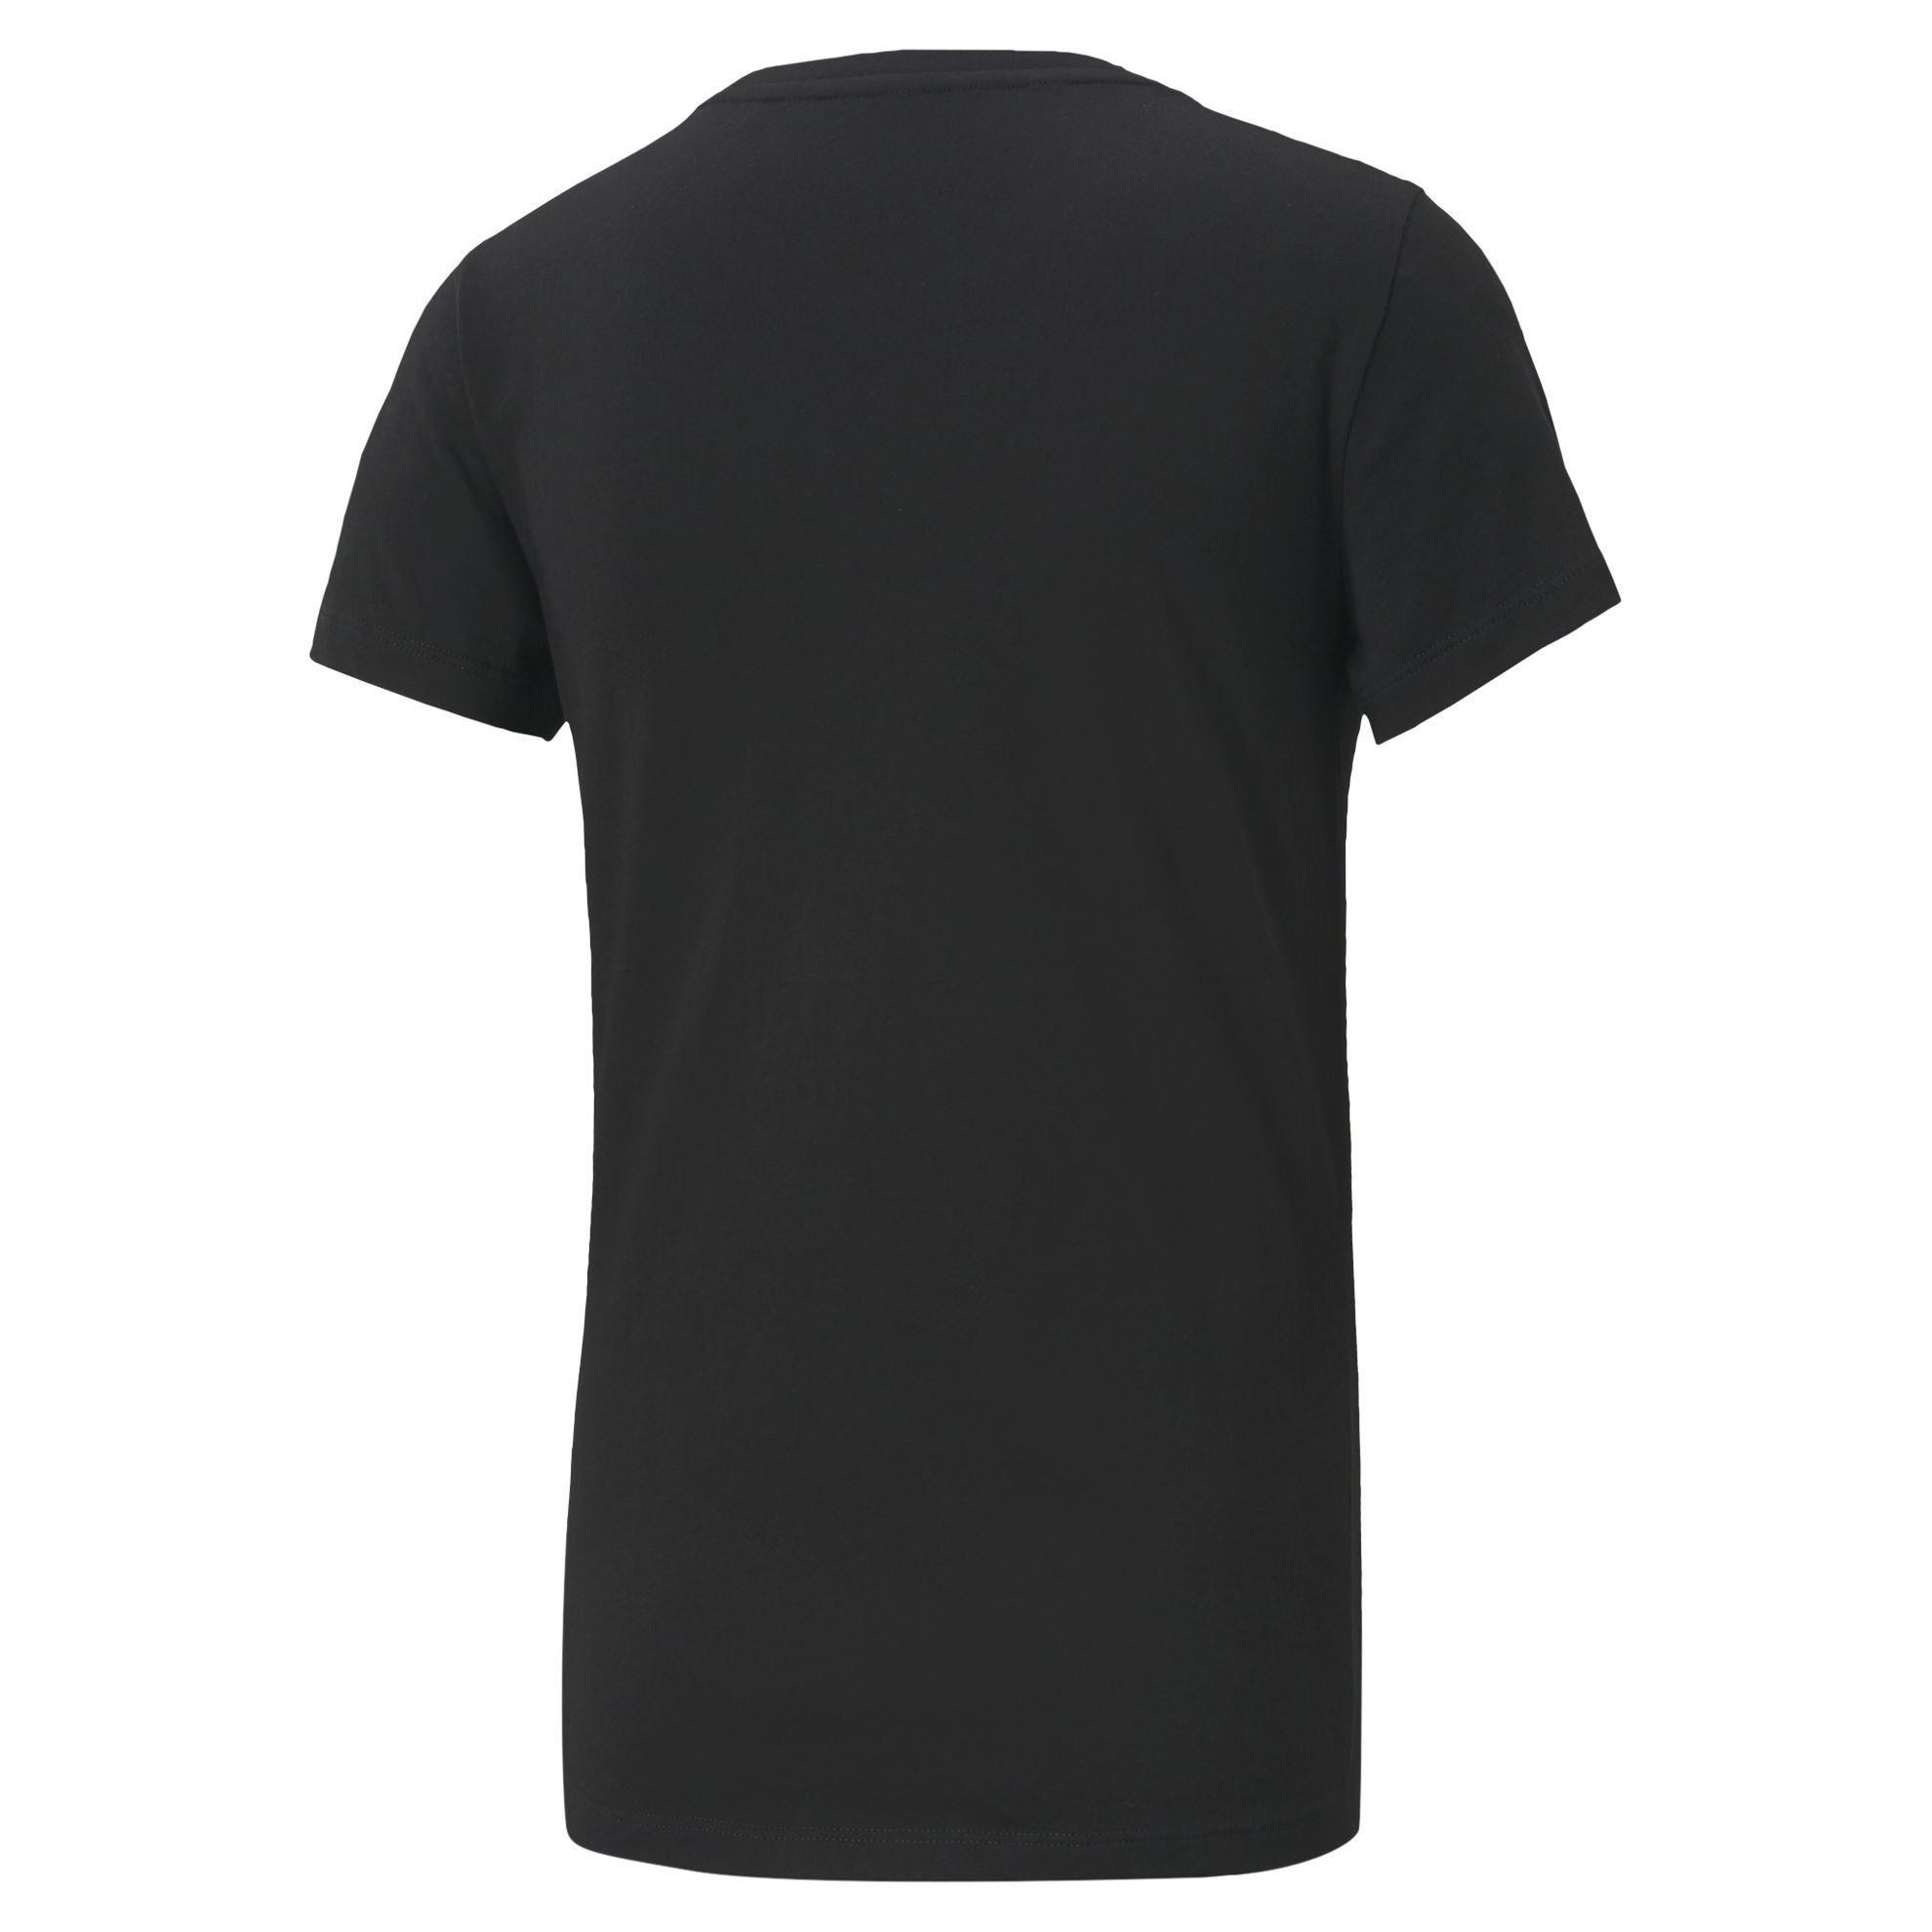 Immagine di T-SHIRT MM AMPLIFIED GRAPHIC TEE BLK-GOL